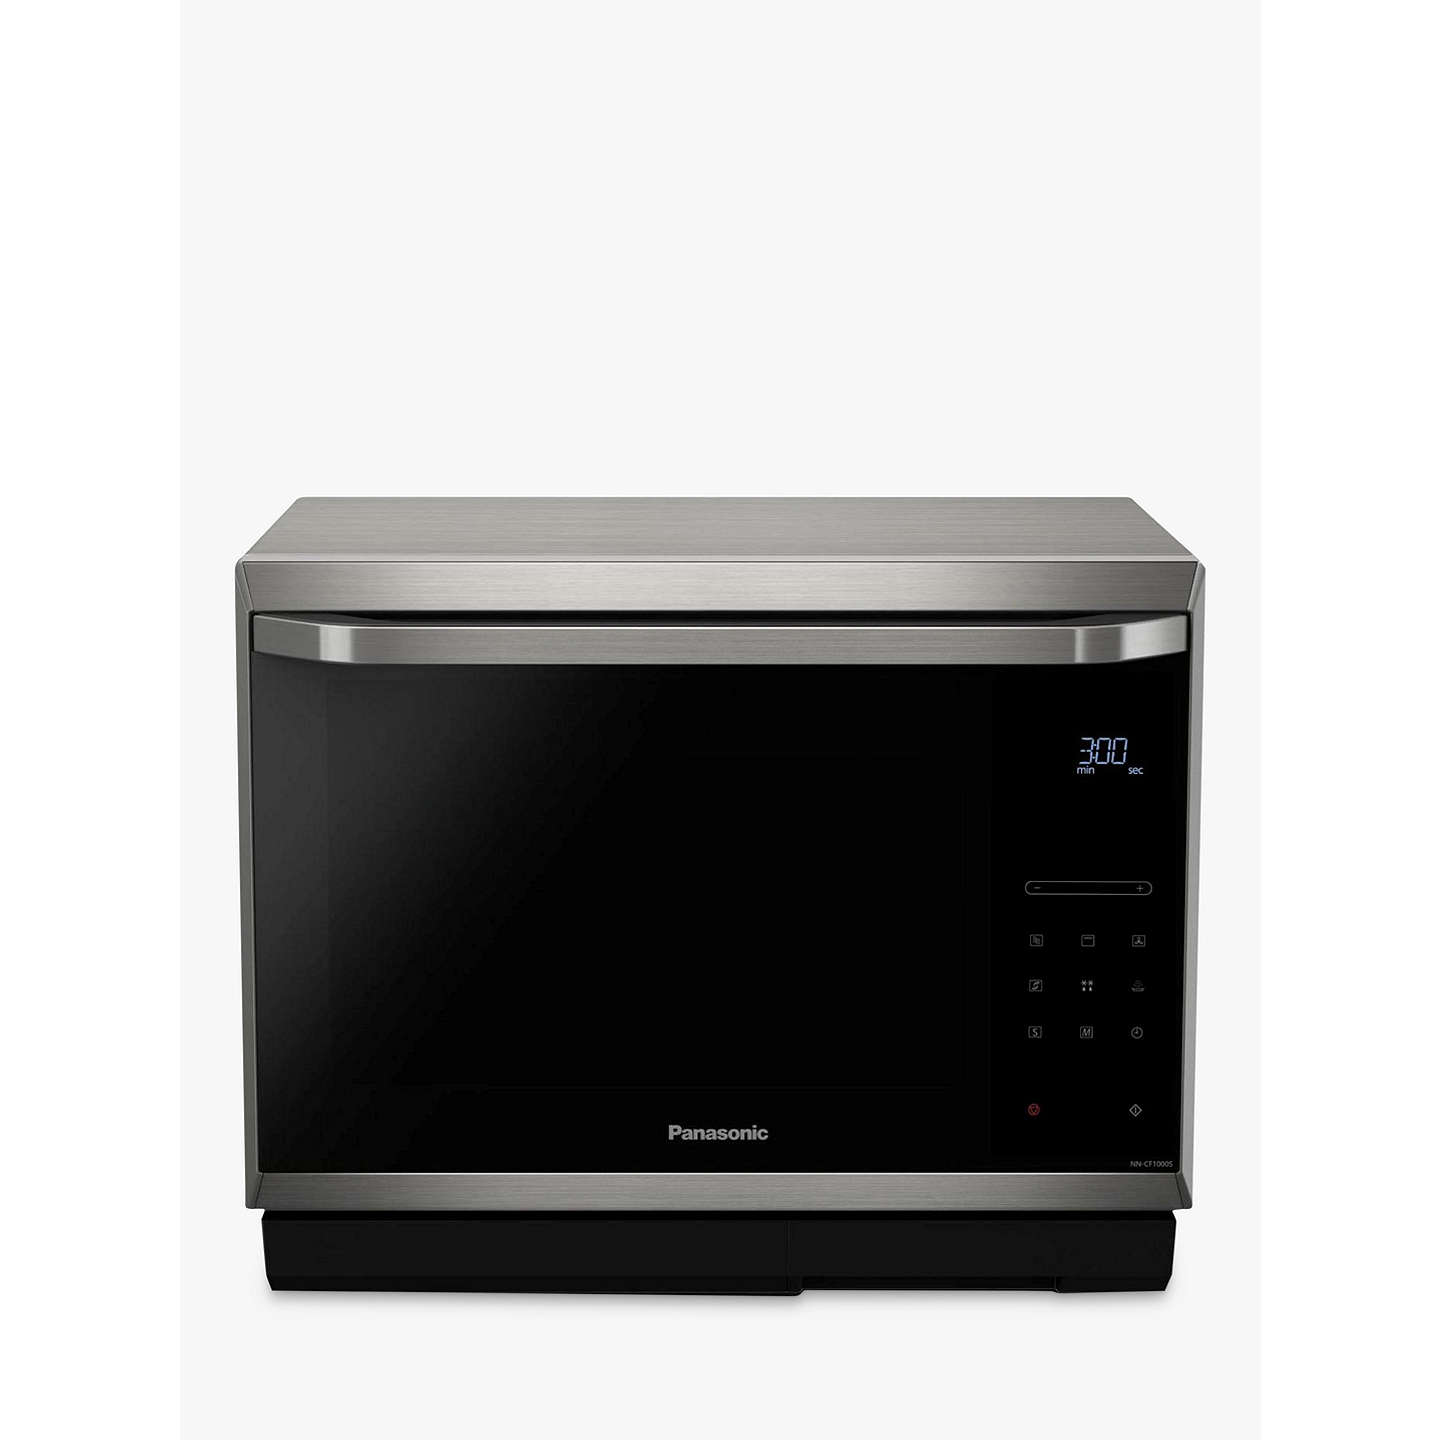 panasonic nn cf873sbpq combination microwave oven stainless steel at john lewis. Black Bedroom Furniture Sets. Home Design Ideas